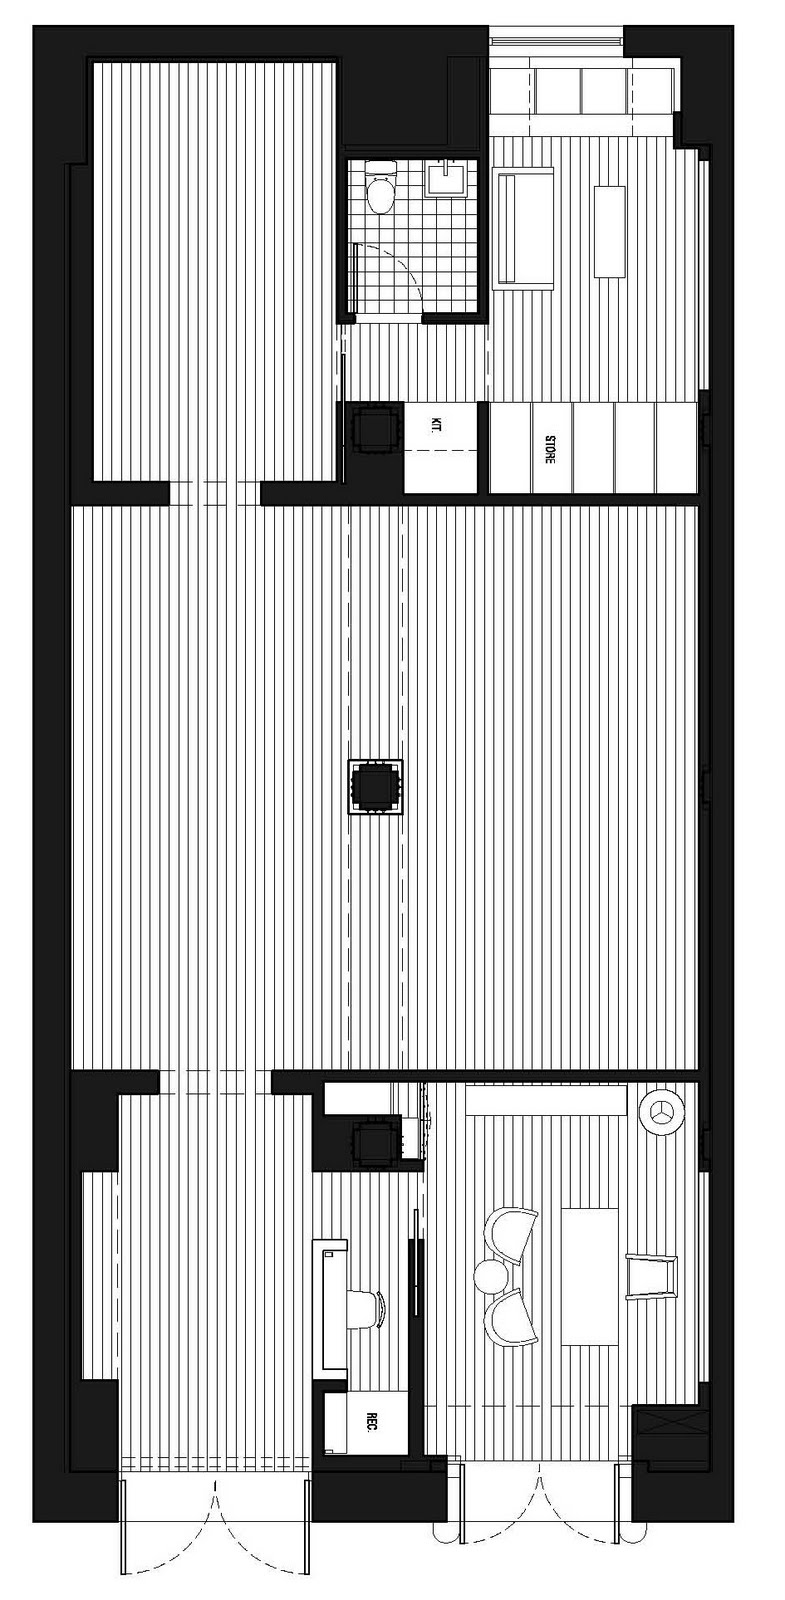 incorporated architecture design benroth rolston stuart Eller Plan.jpg